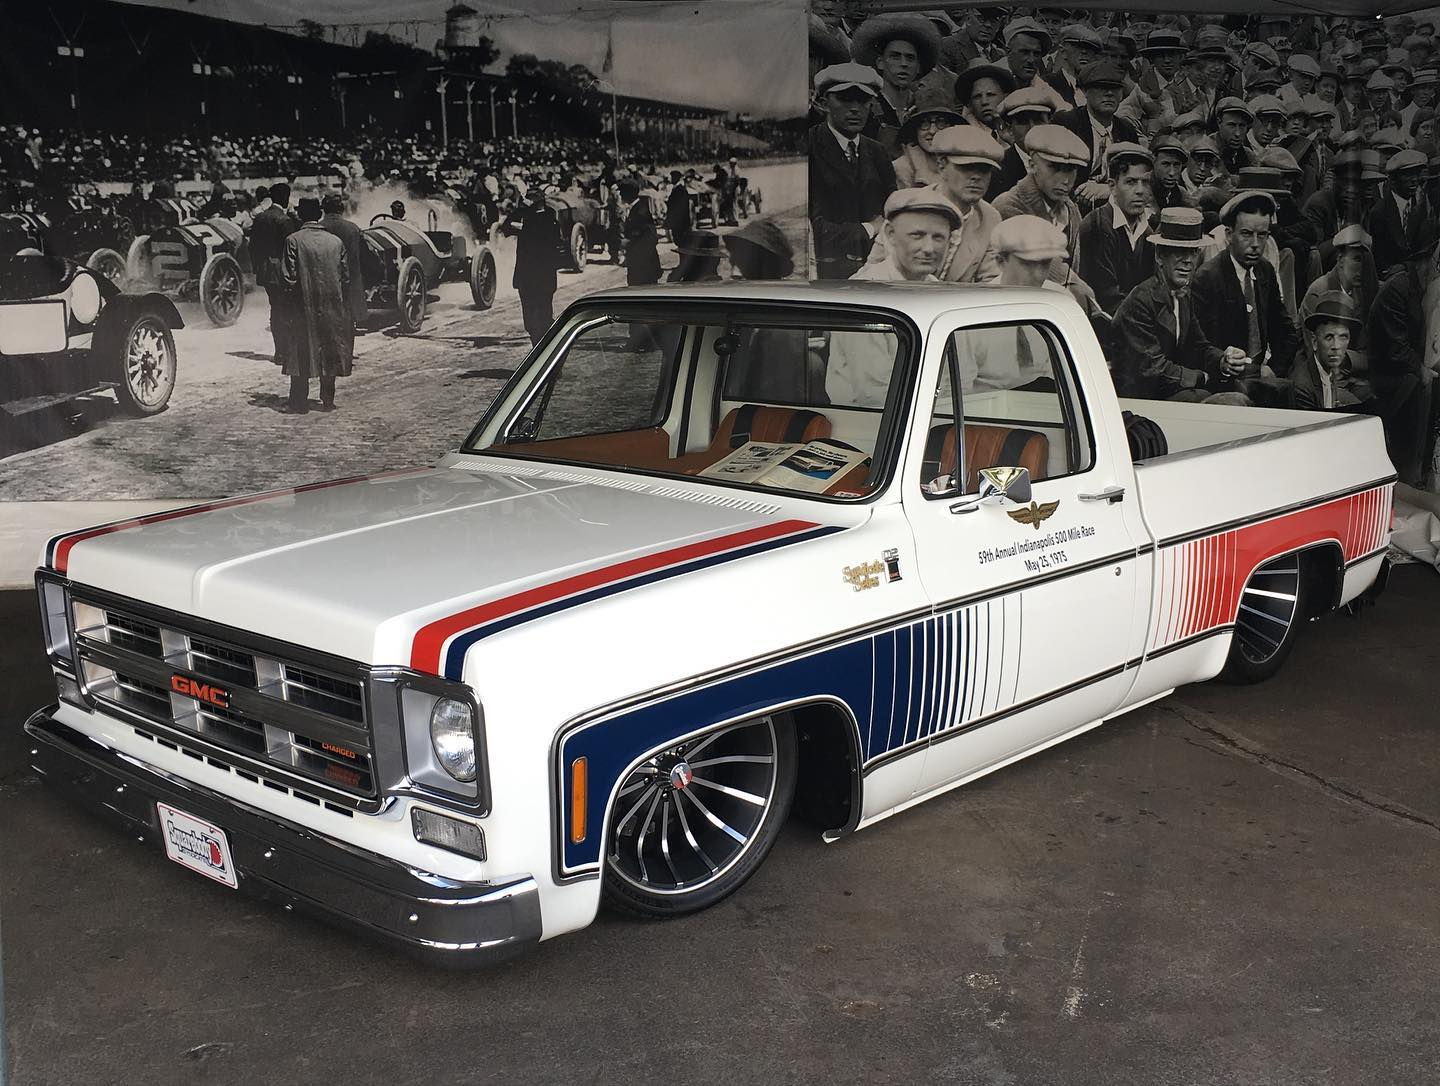 1976 GMC Truck with a Supercharged LS3 V8